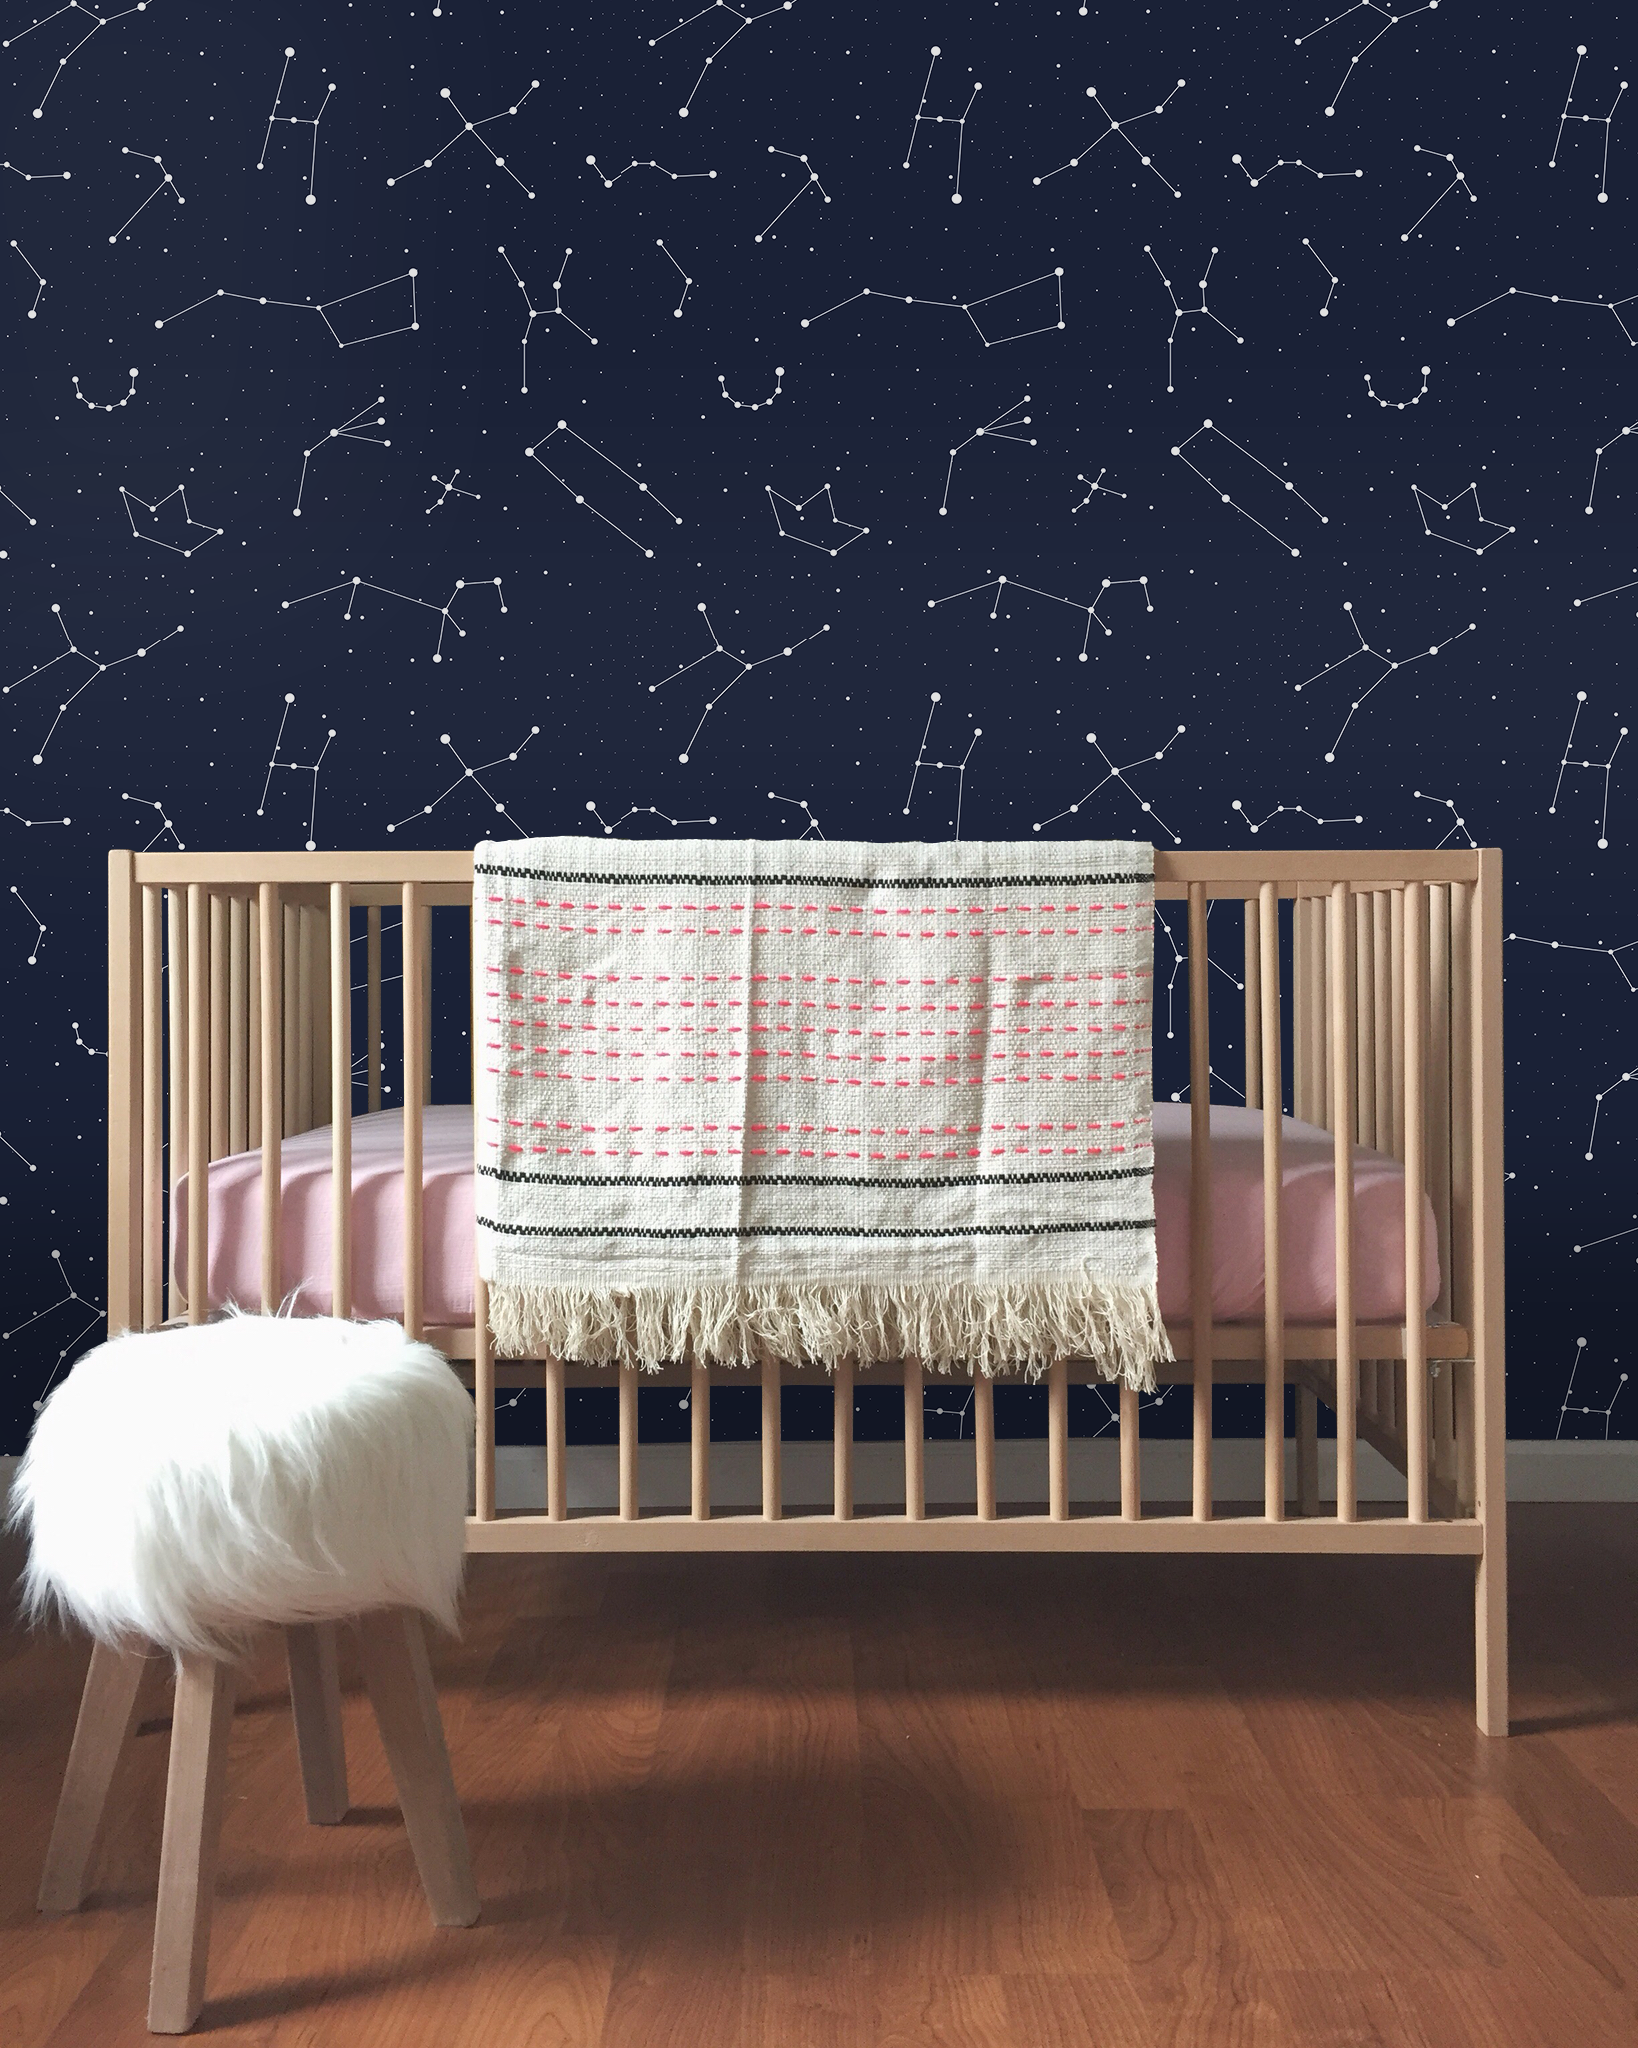 Constellation Wall Mural Removable Wallpapers L And Stick Murals Temporary Covers Easy Paper Coloraydecor